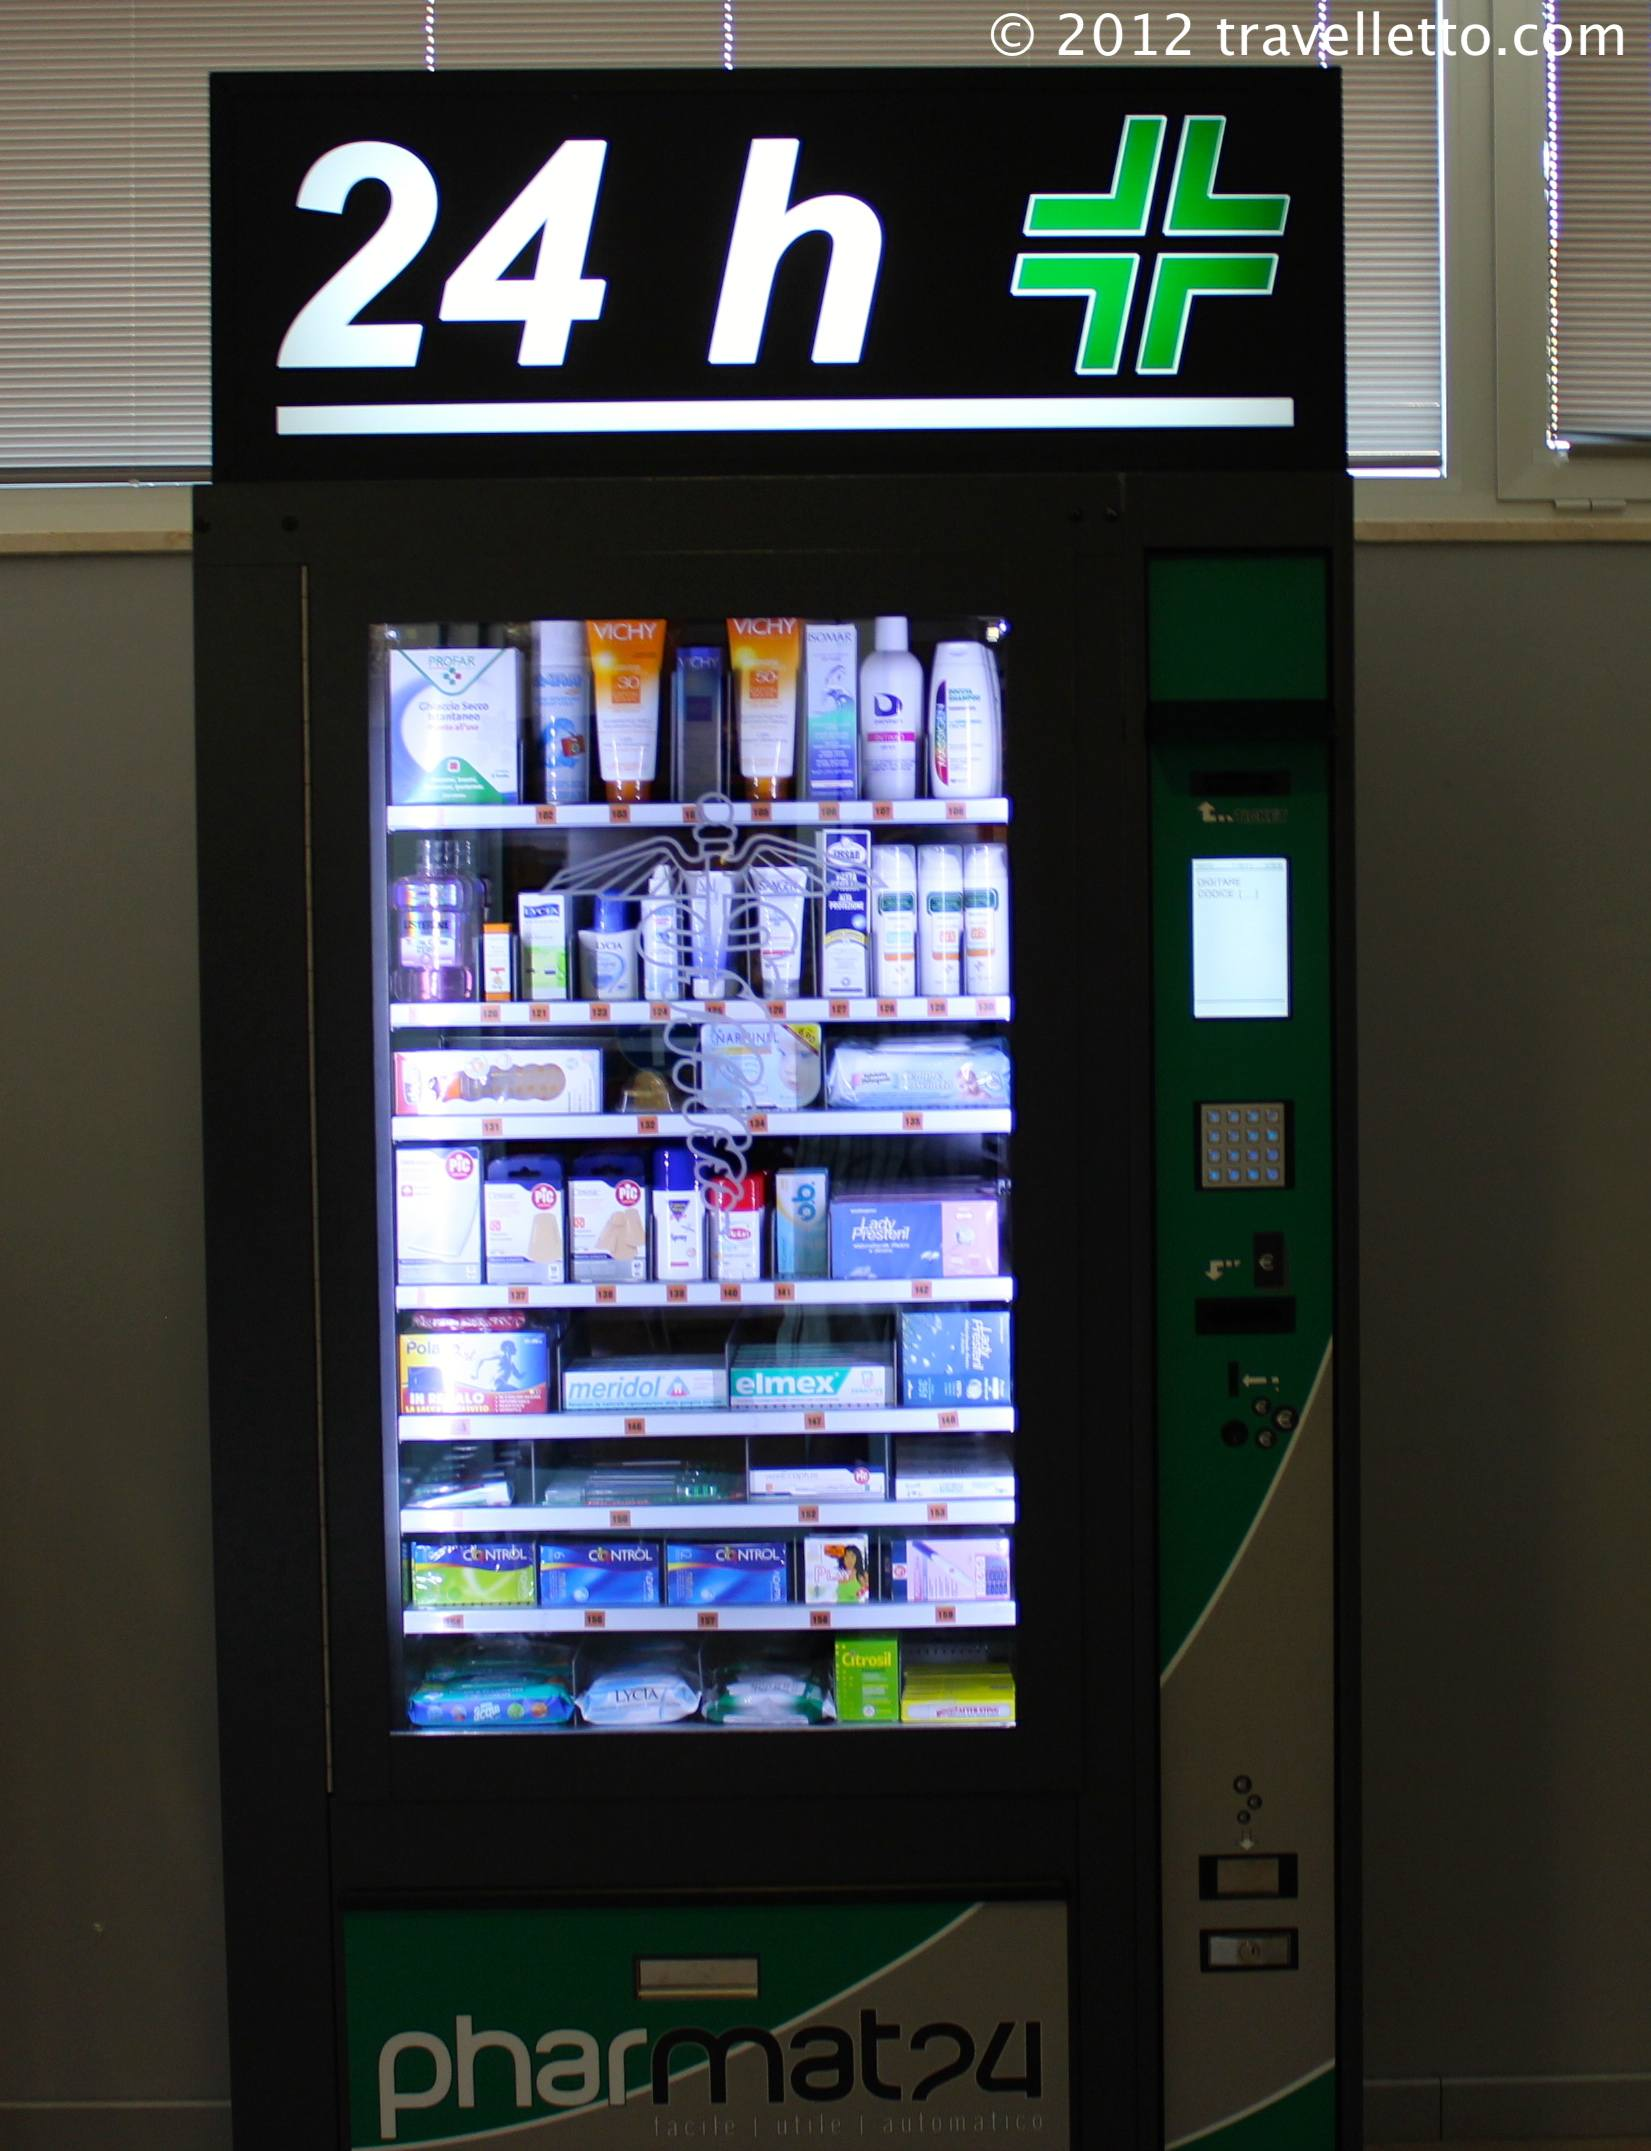 test cases for vending machine